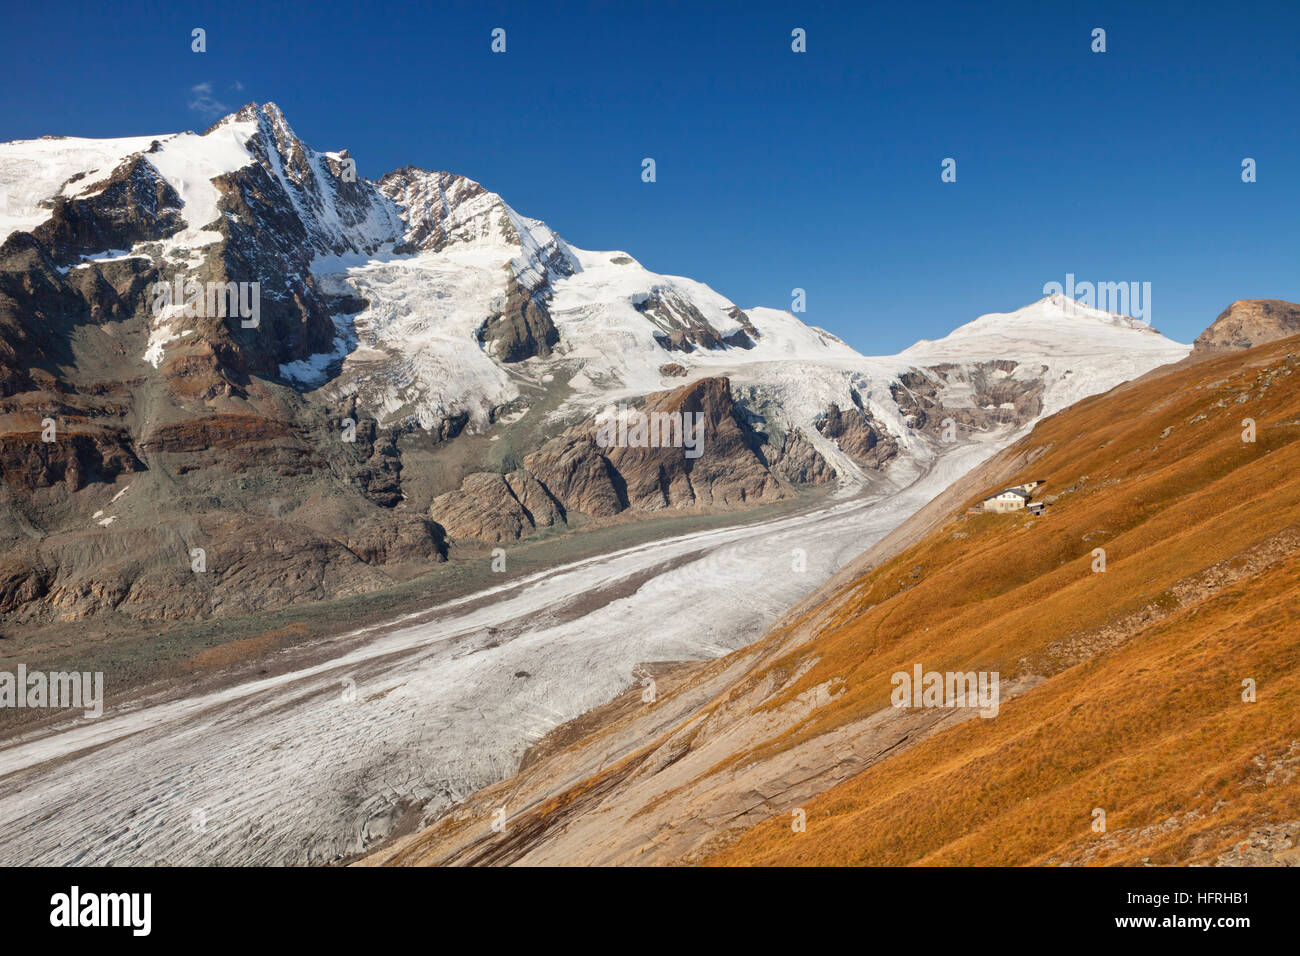 The Großglockner peak and Pasterze Glacier in the Hohe Tauern National Park in Austria on a clear day. - Stock Image